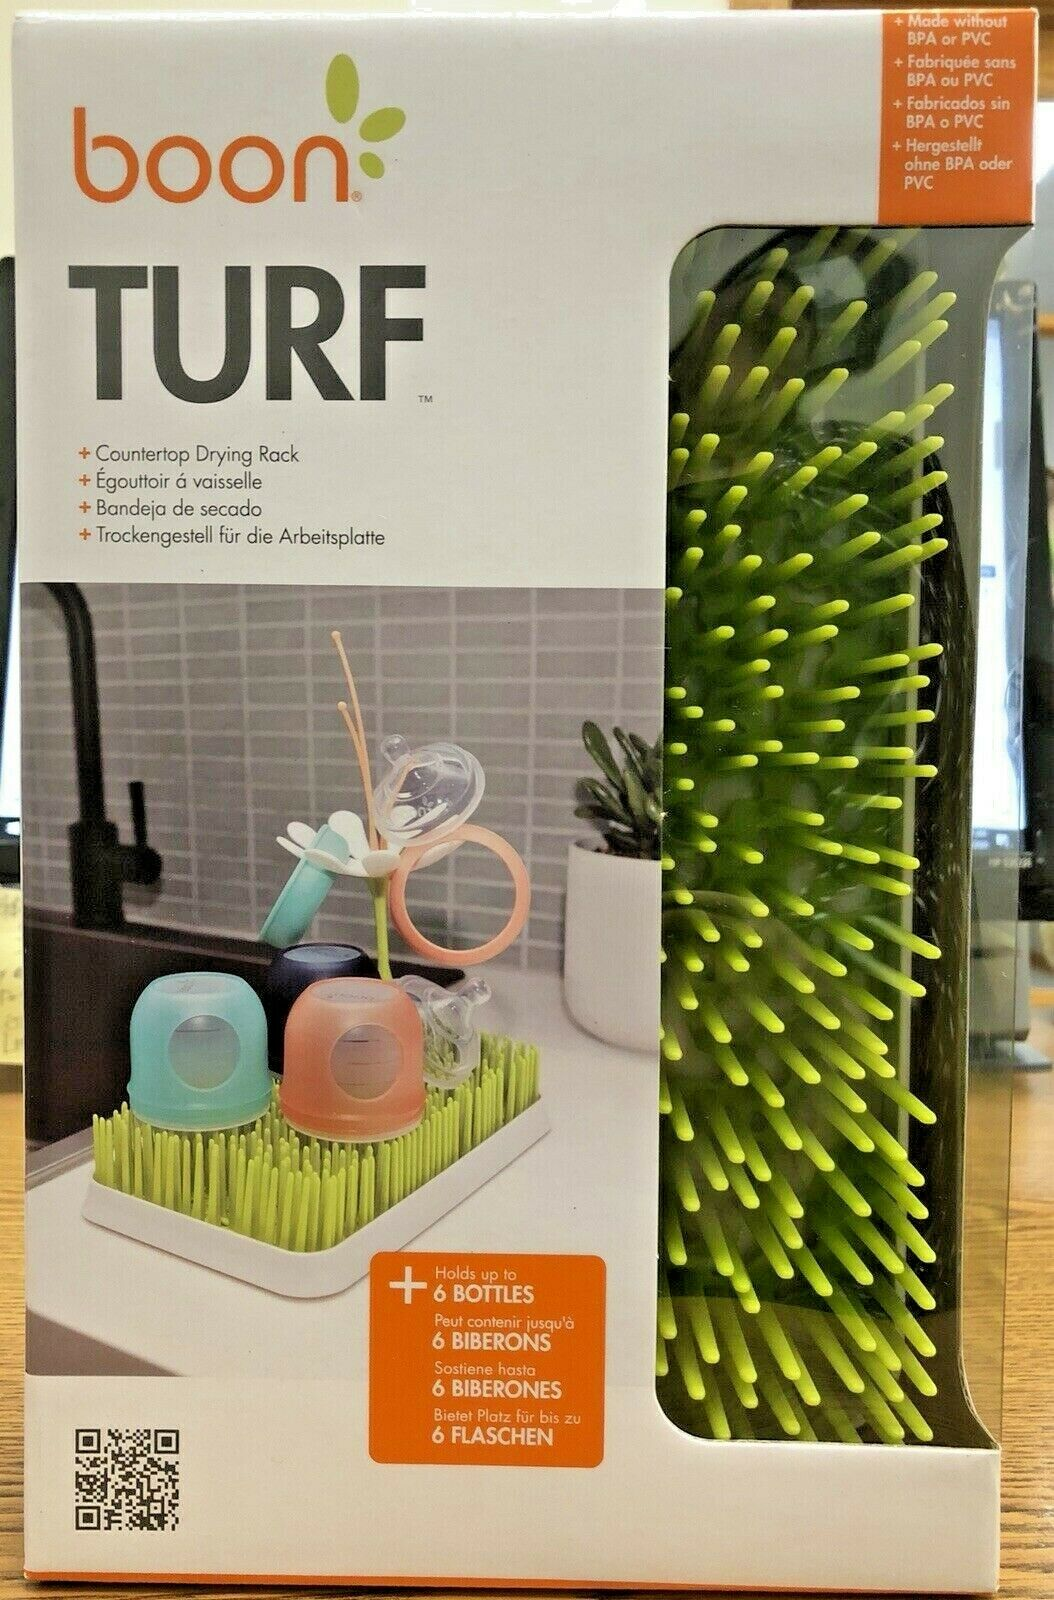 Boon Turf Countertop Drying Rack